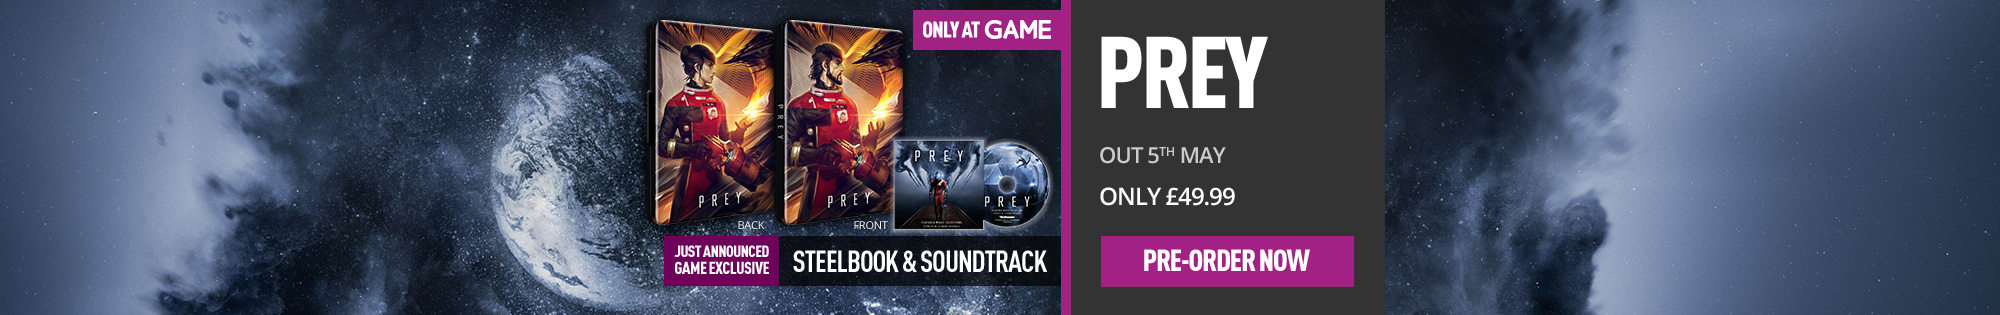 Prey with Only at GAME Steelbook and Soundtrack for PlayStation 4, Xbox One and PC